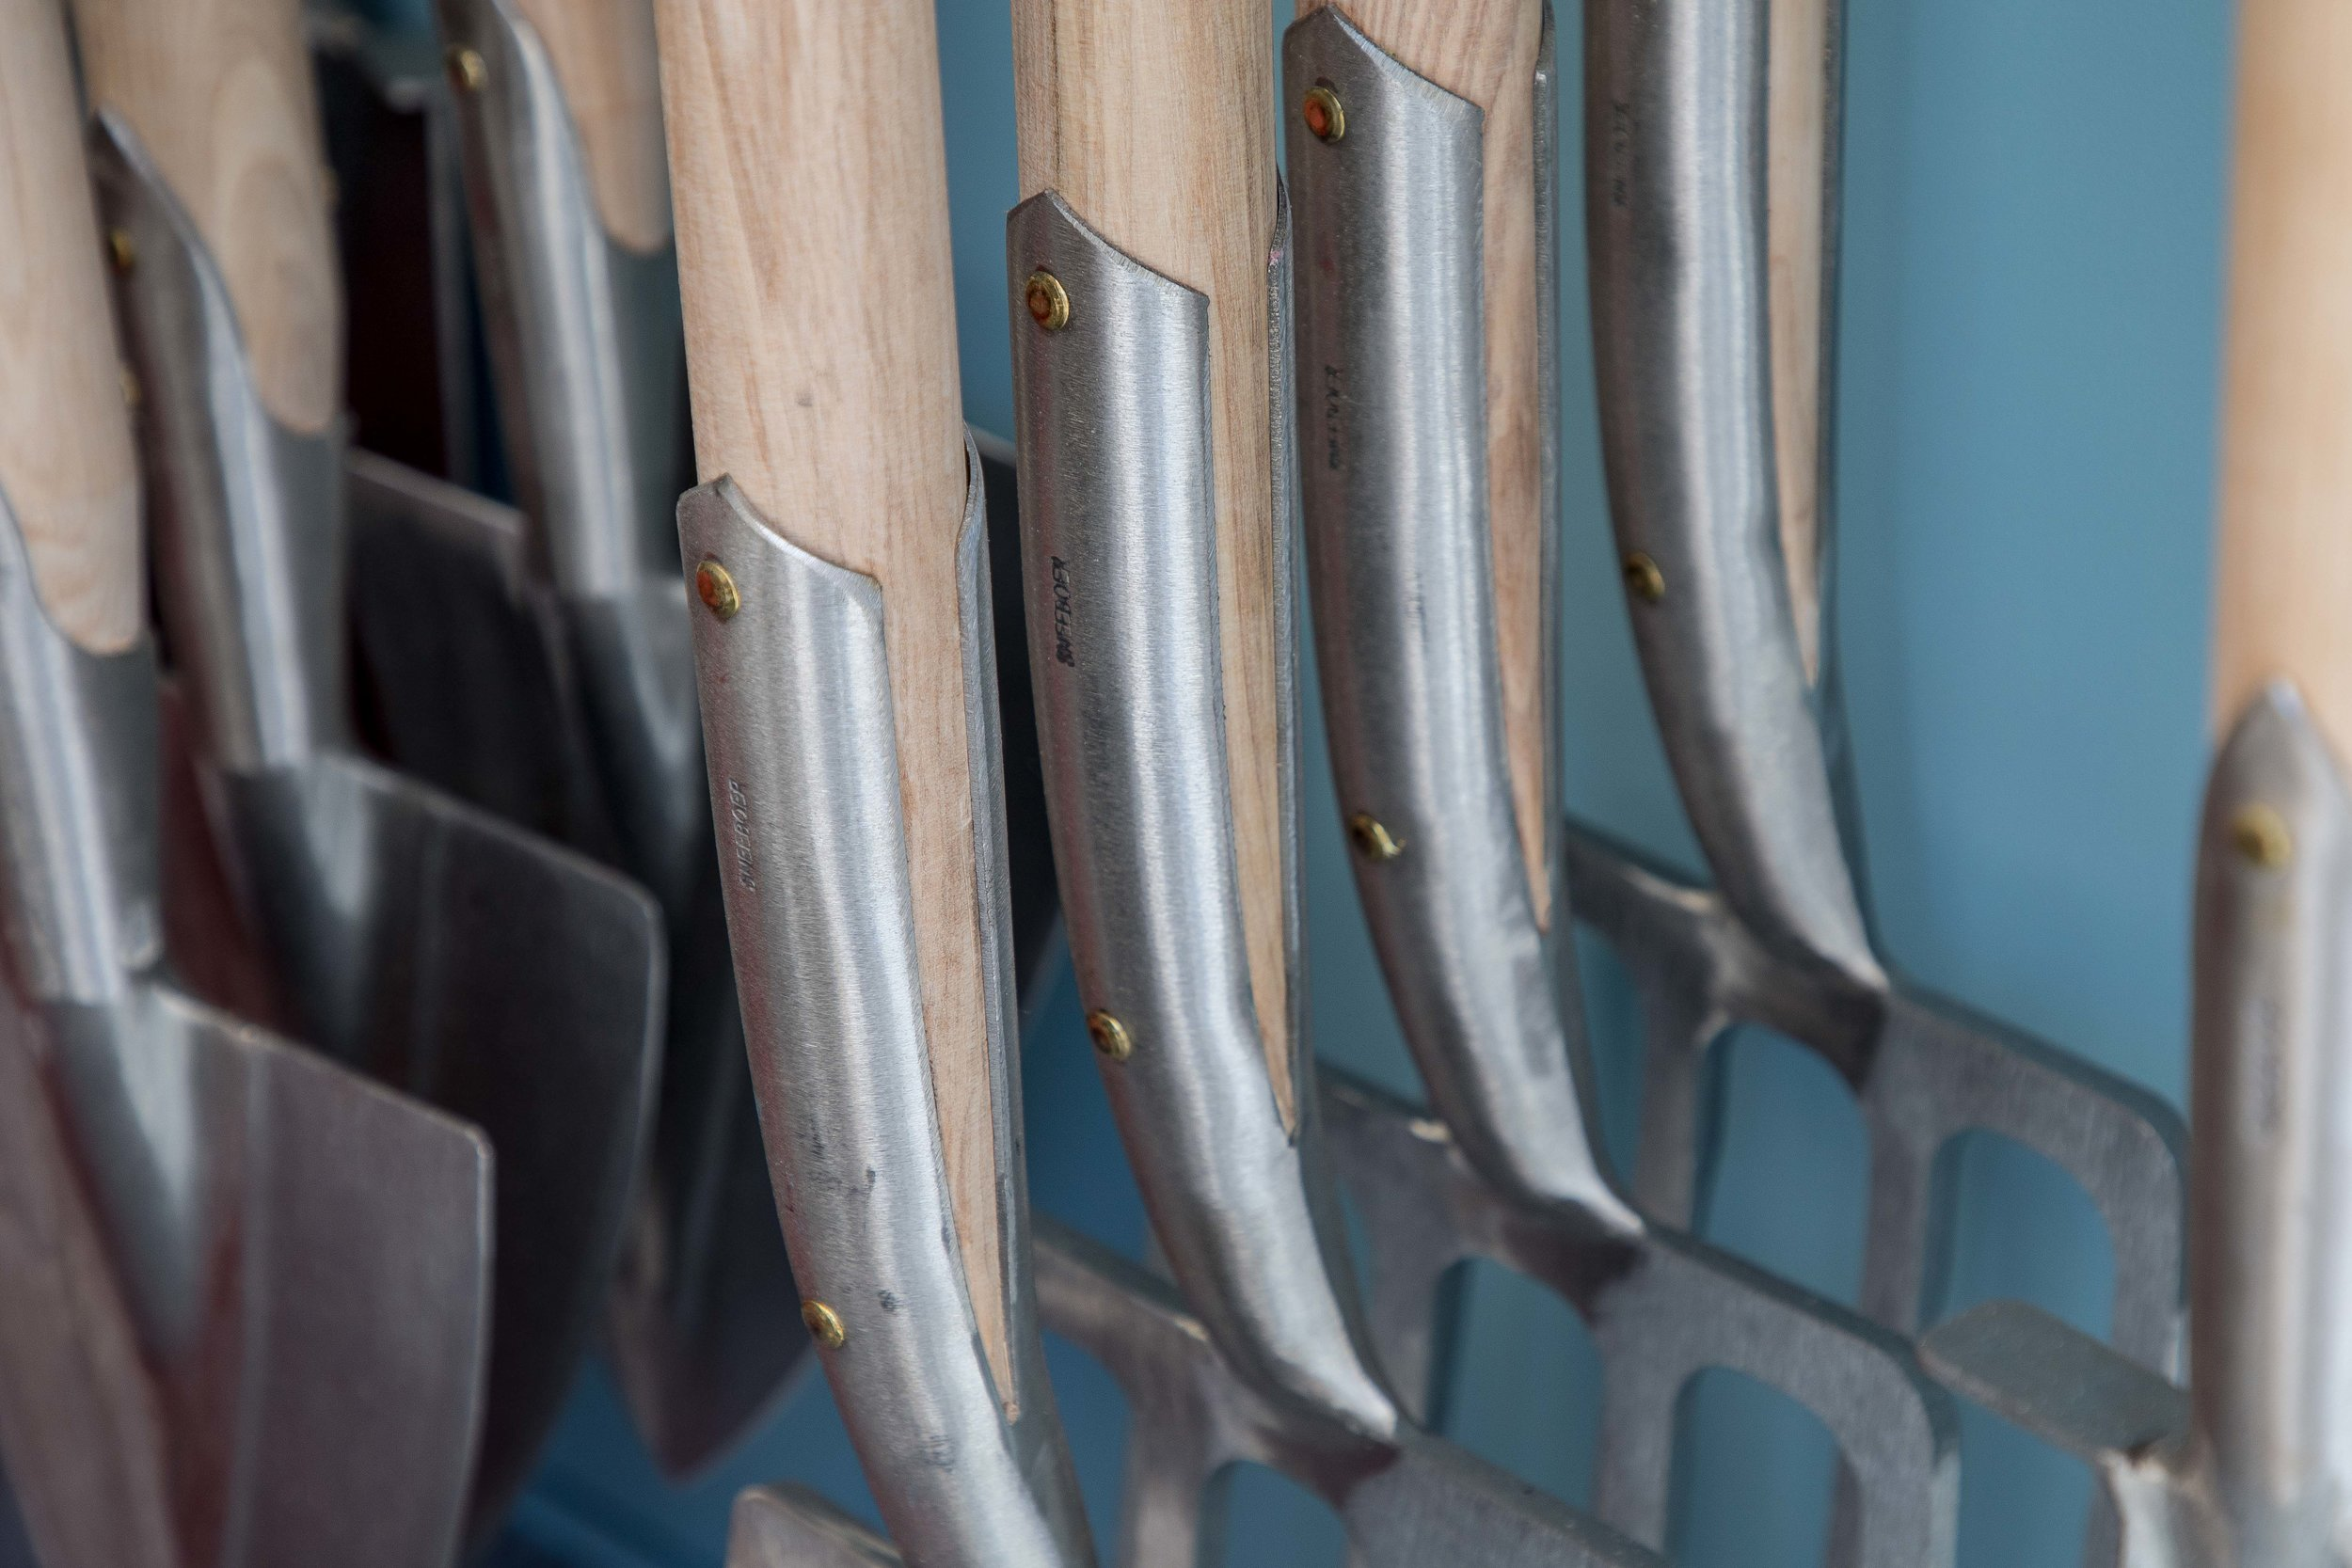 The beautifully crafted Sneeboer Stainless steel tools on display at Chelsea Flower Show